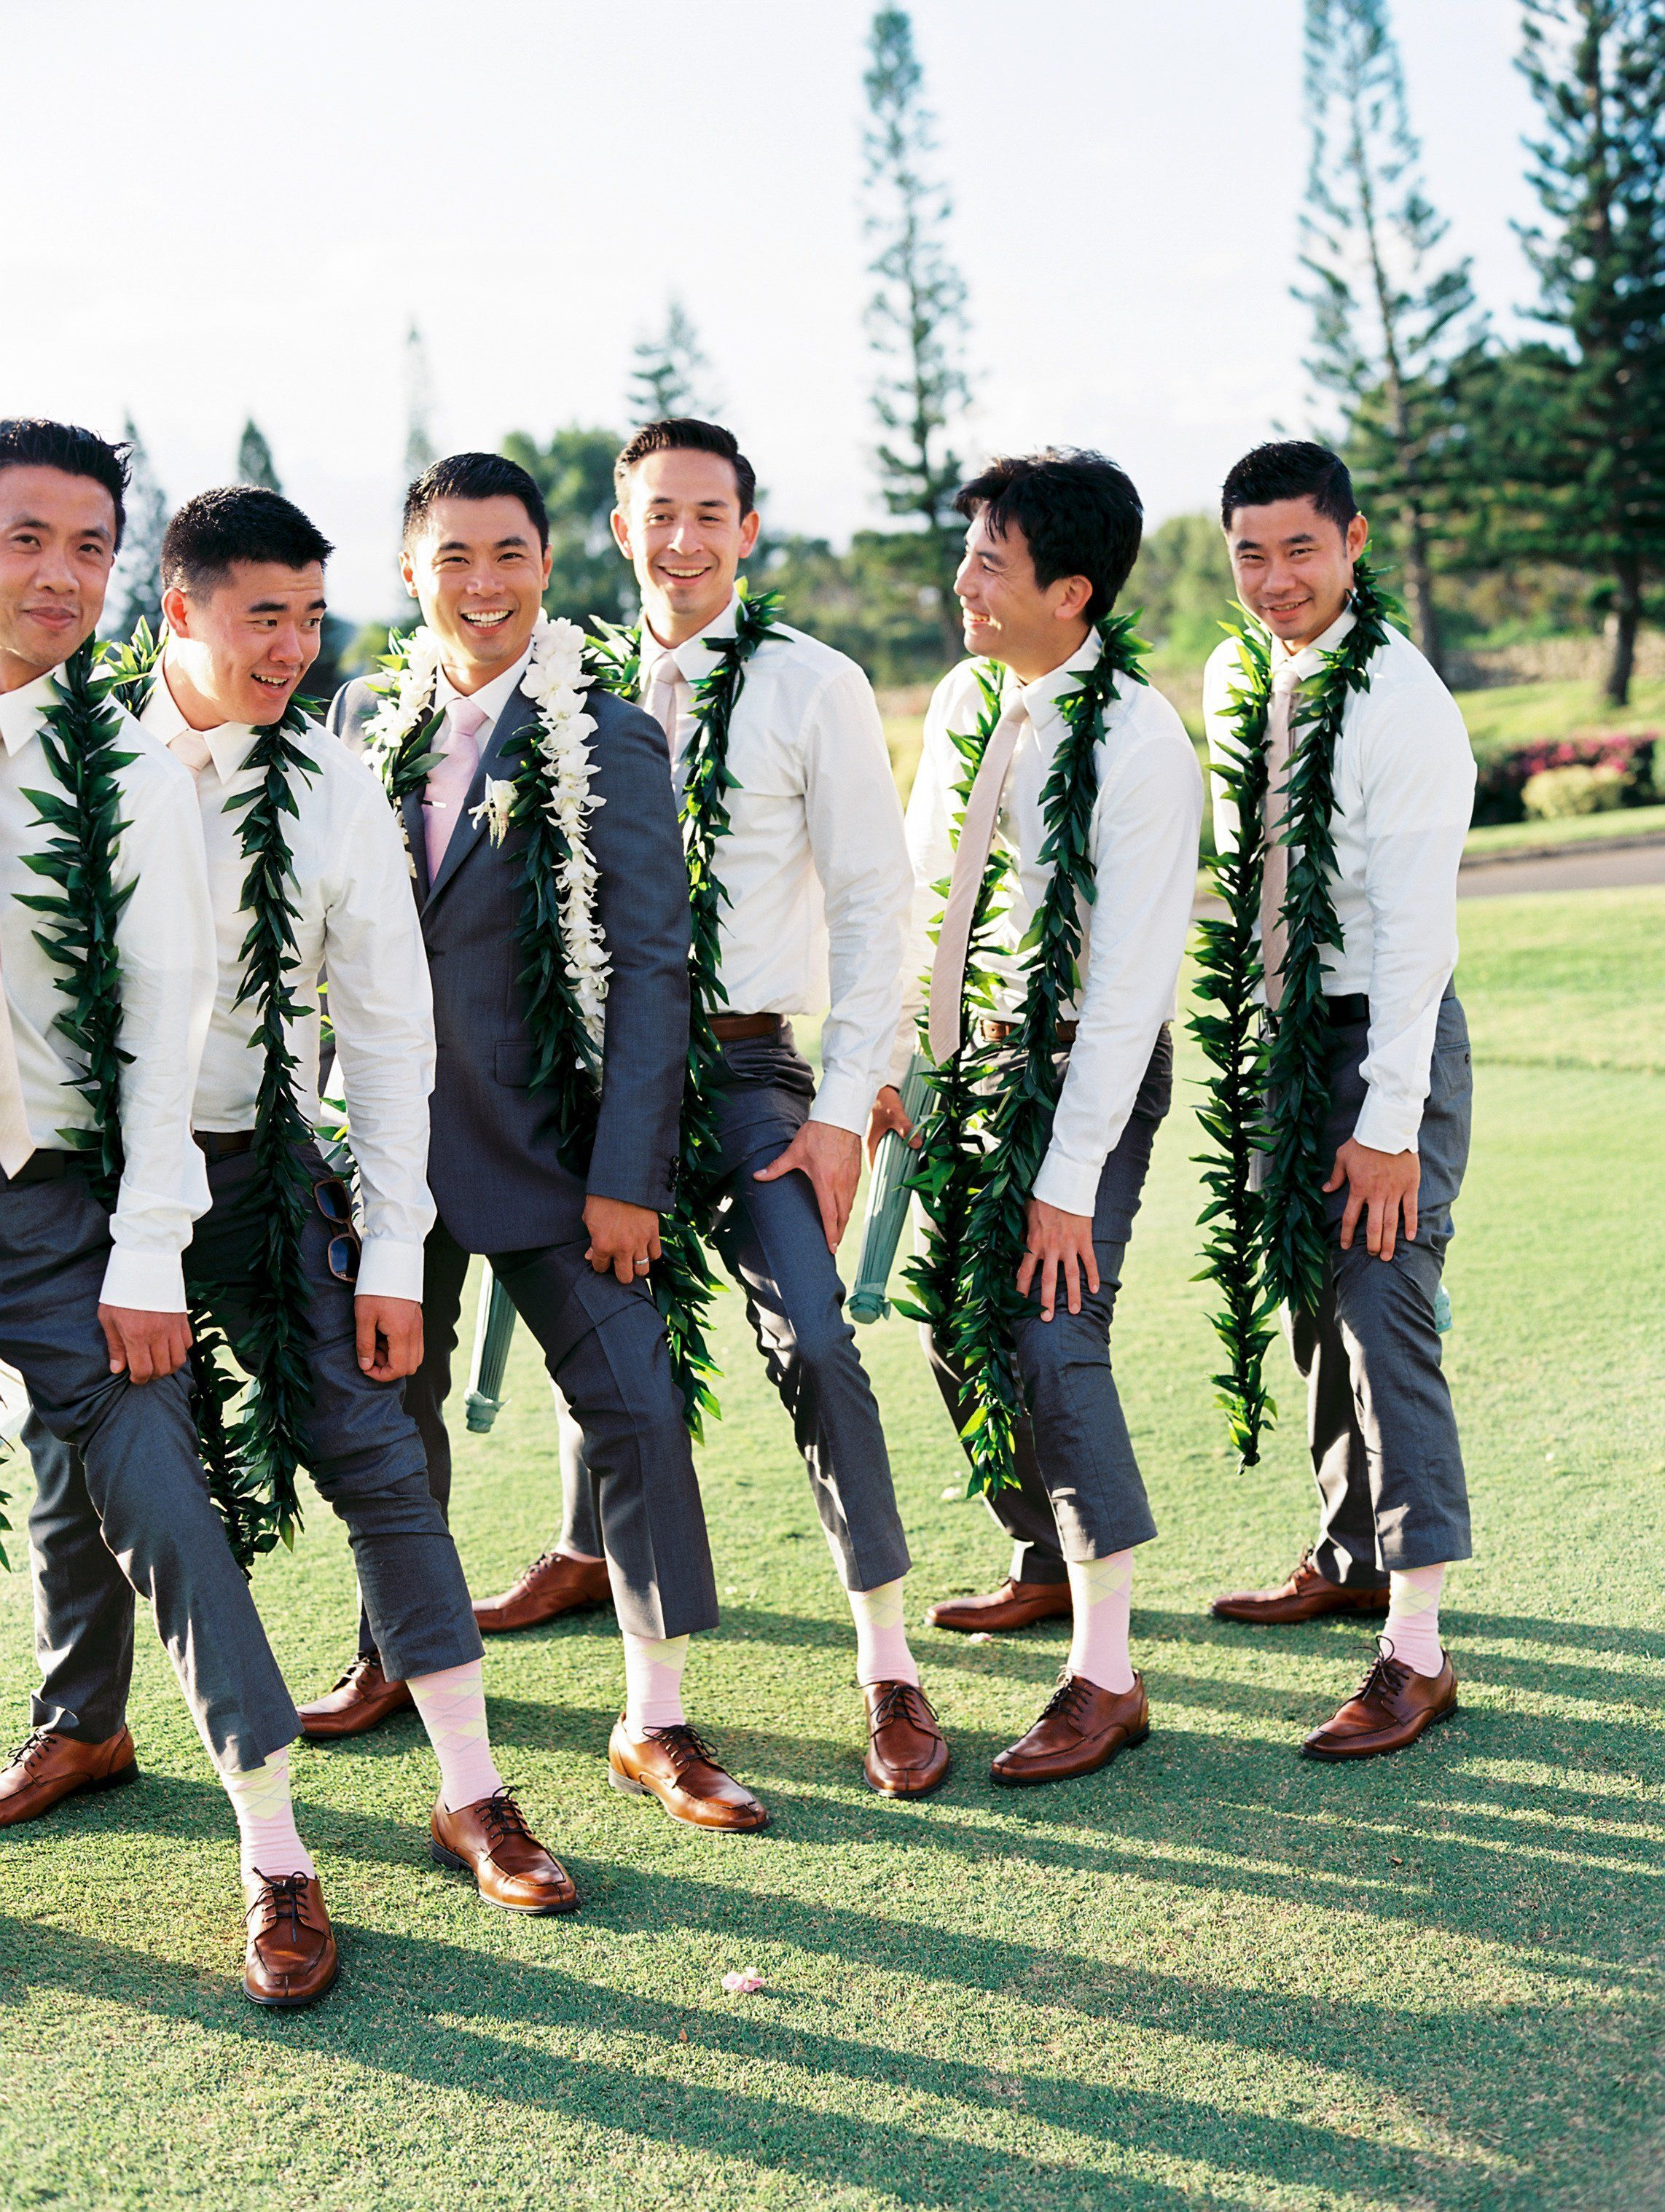 A fun and sophisticated groomsmen look the mix of classic